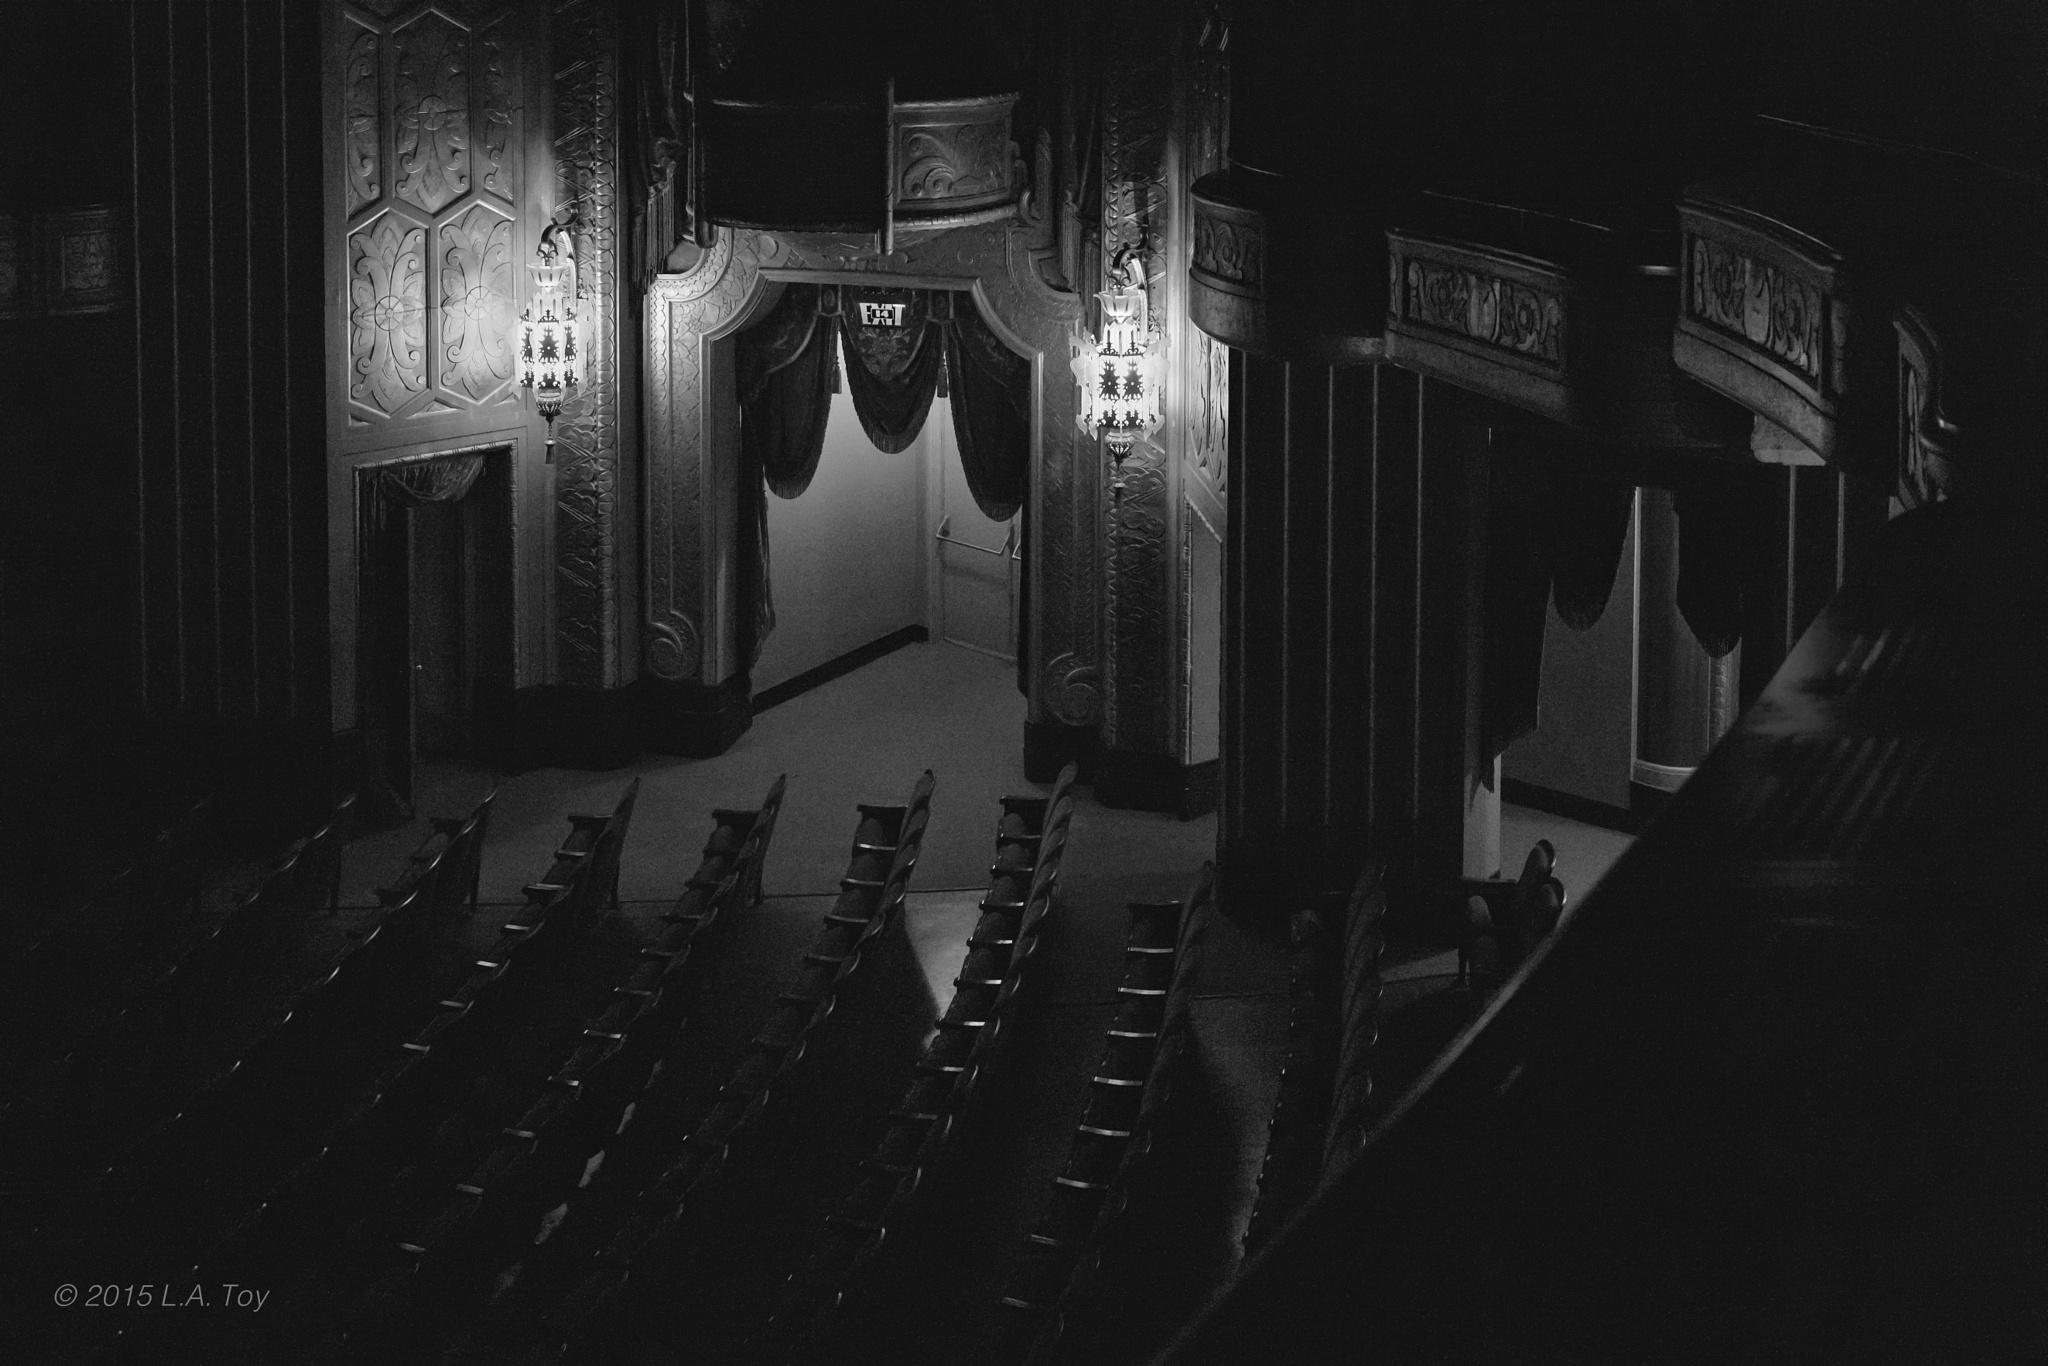 Exit 14, Warner Theatre by L.A. Toy